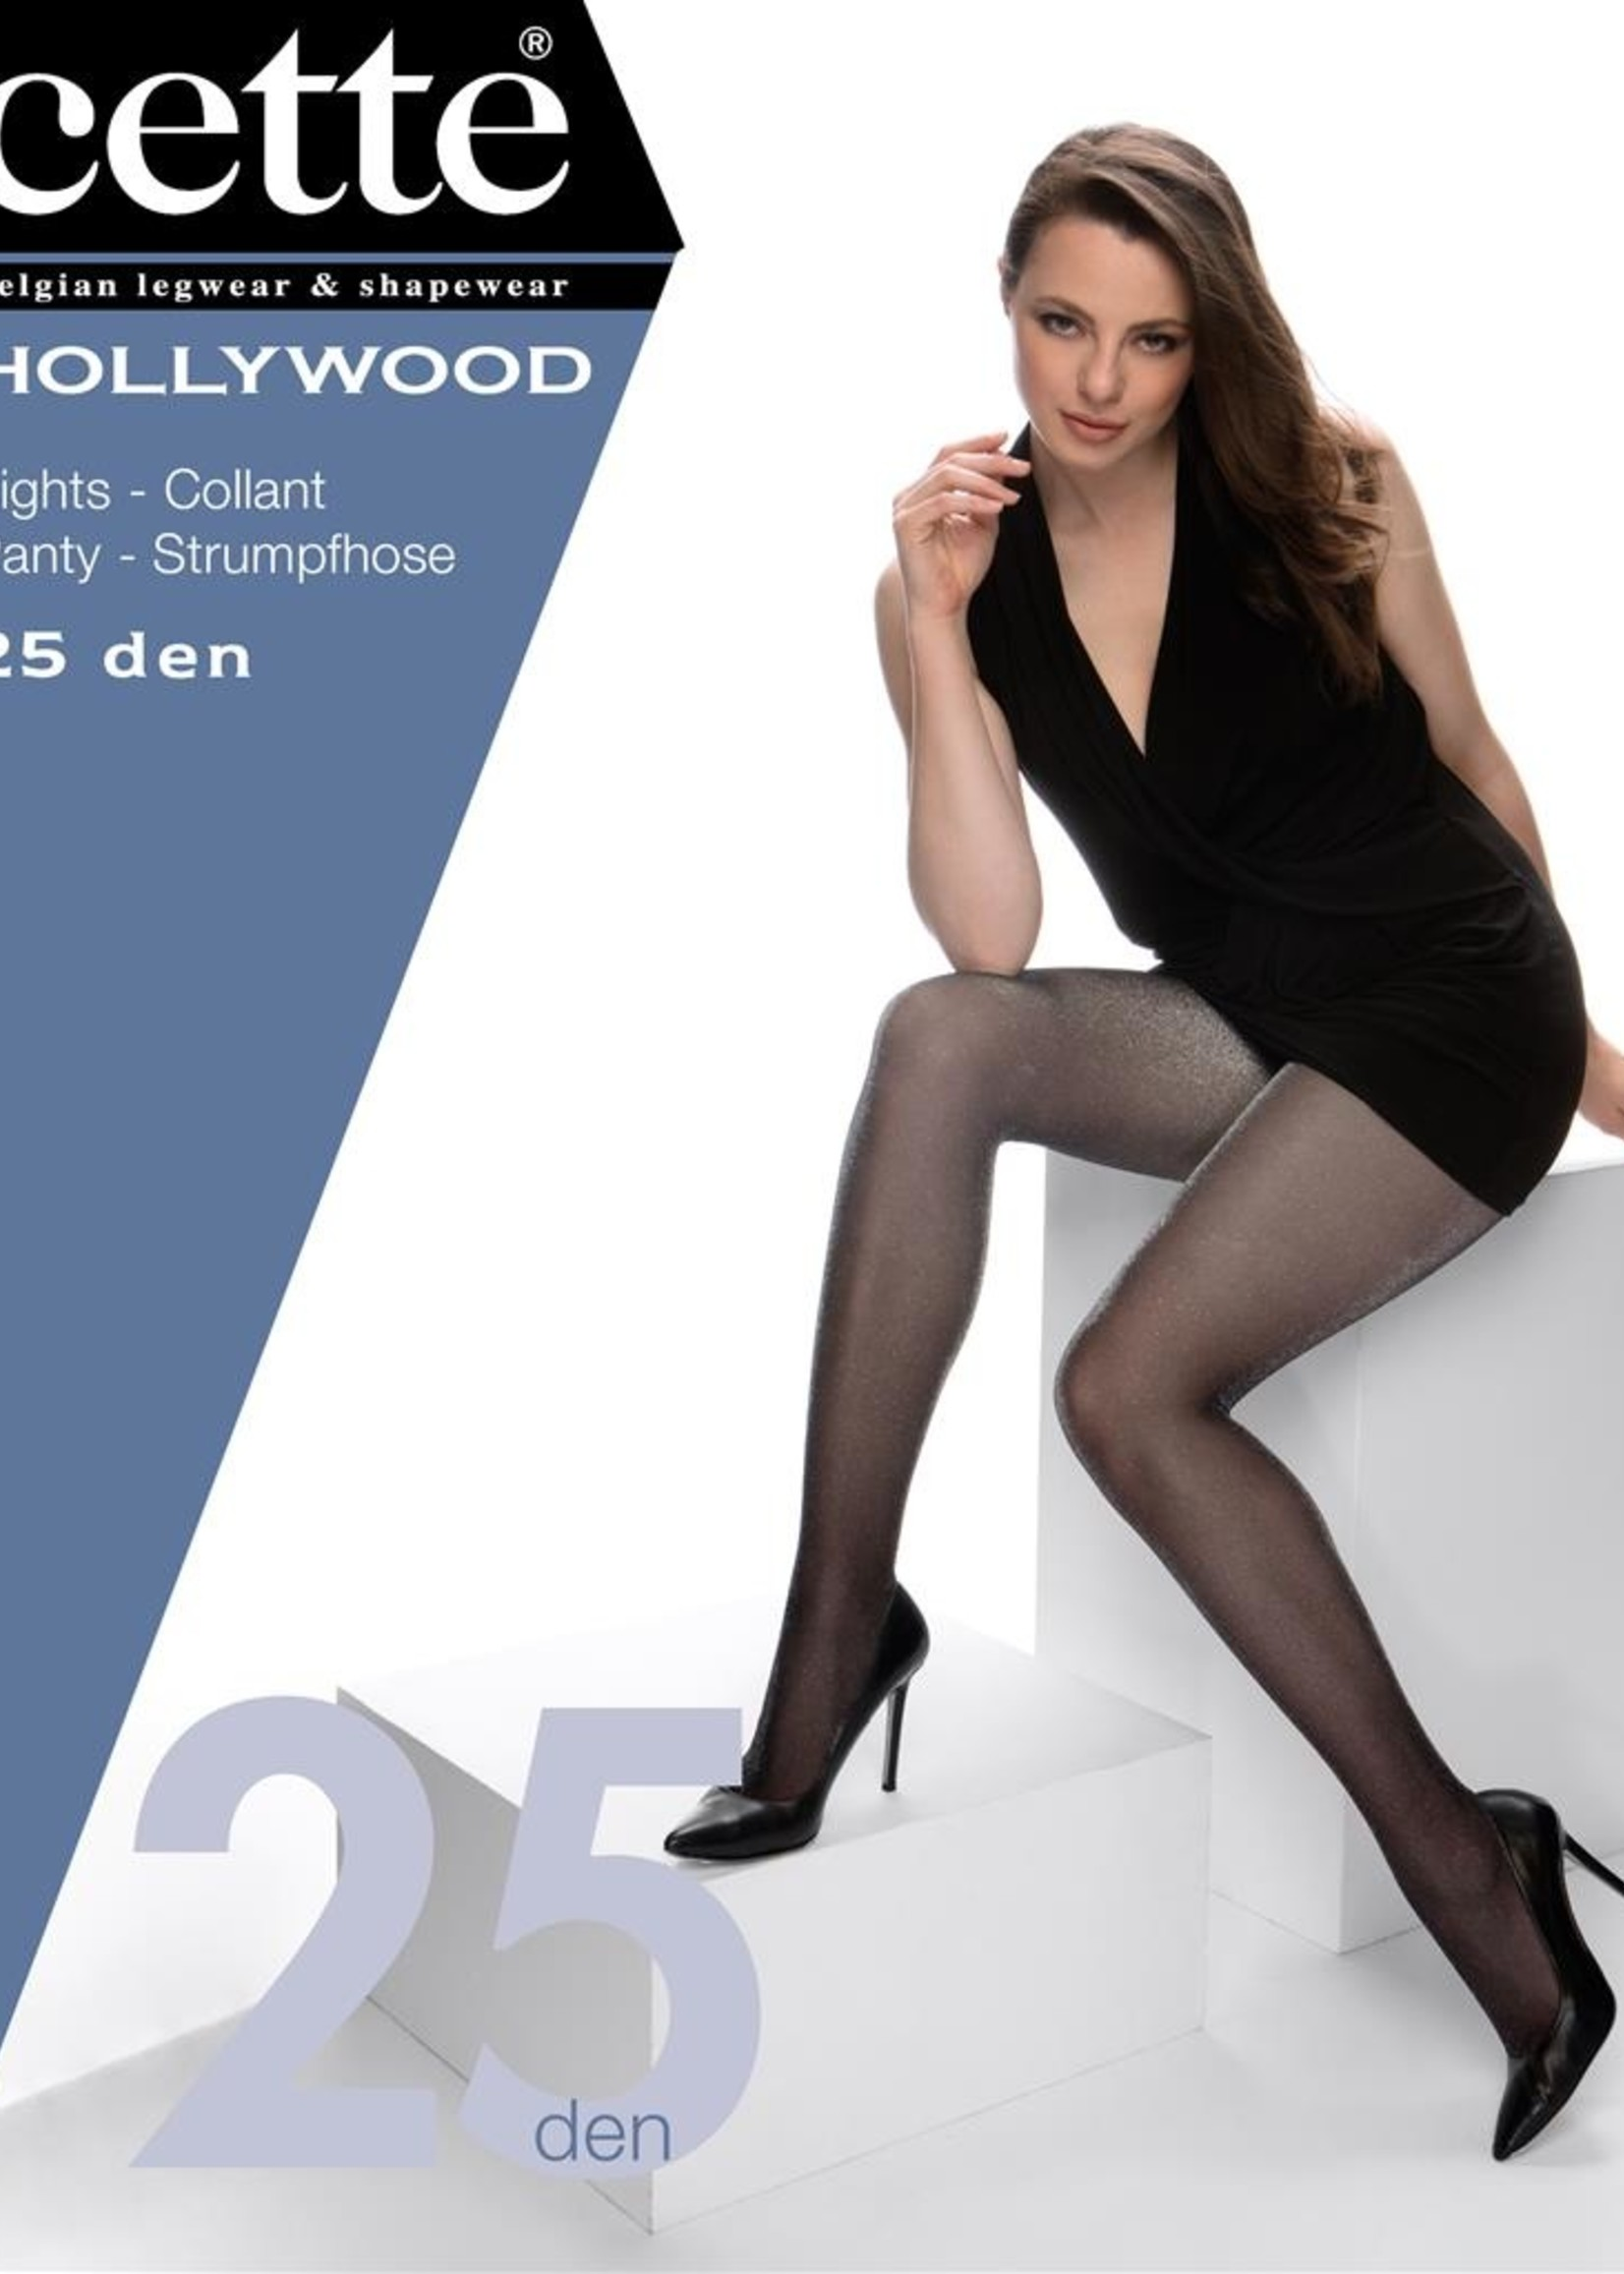 Cette Cetty Hollywood Plus Size Panty